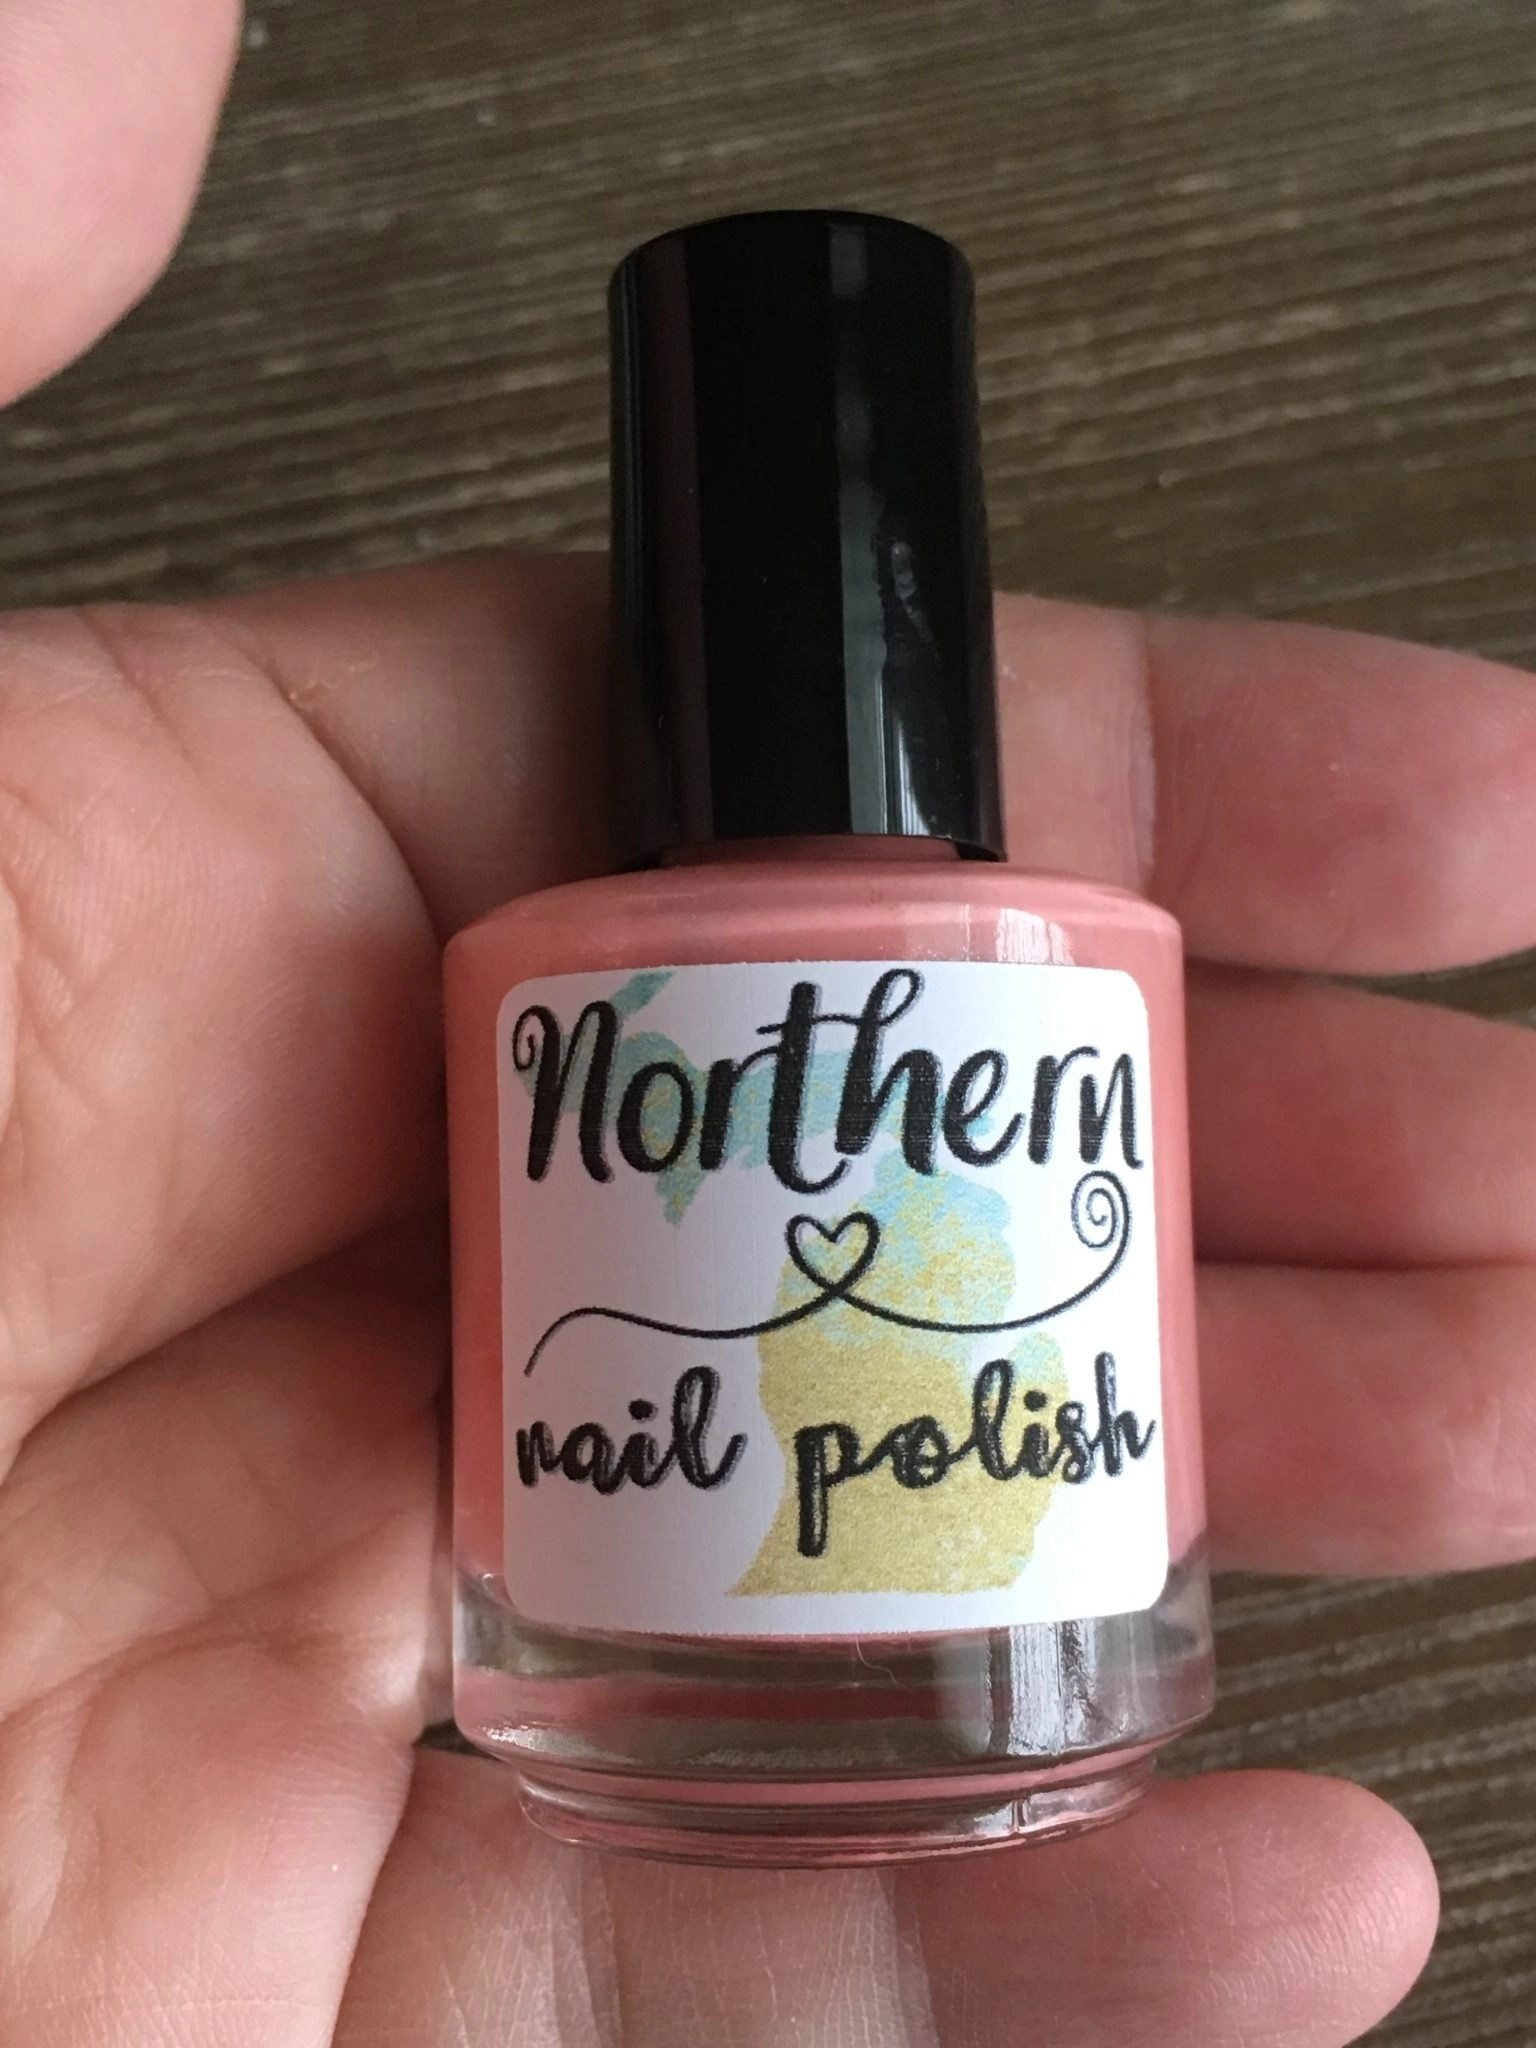 Northern Nail Polish in America's High Five